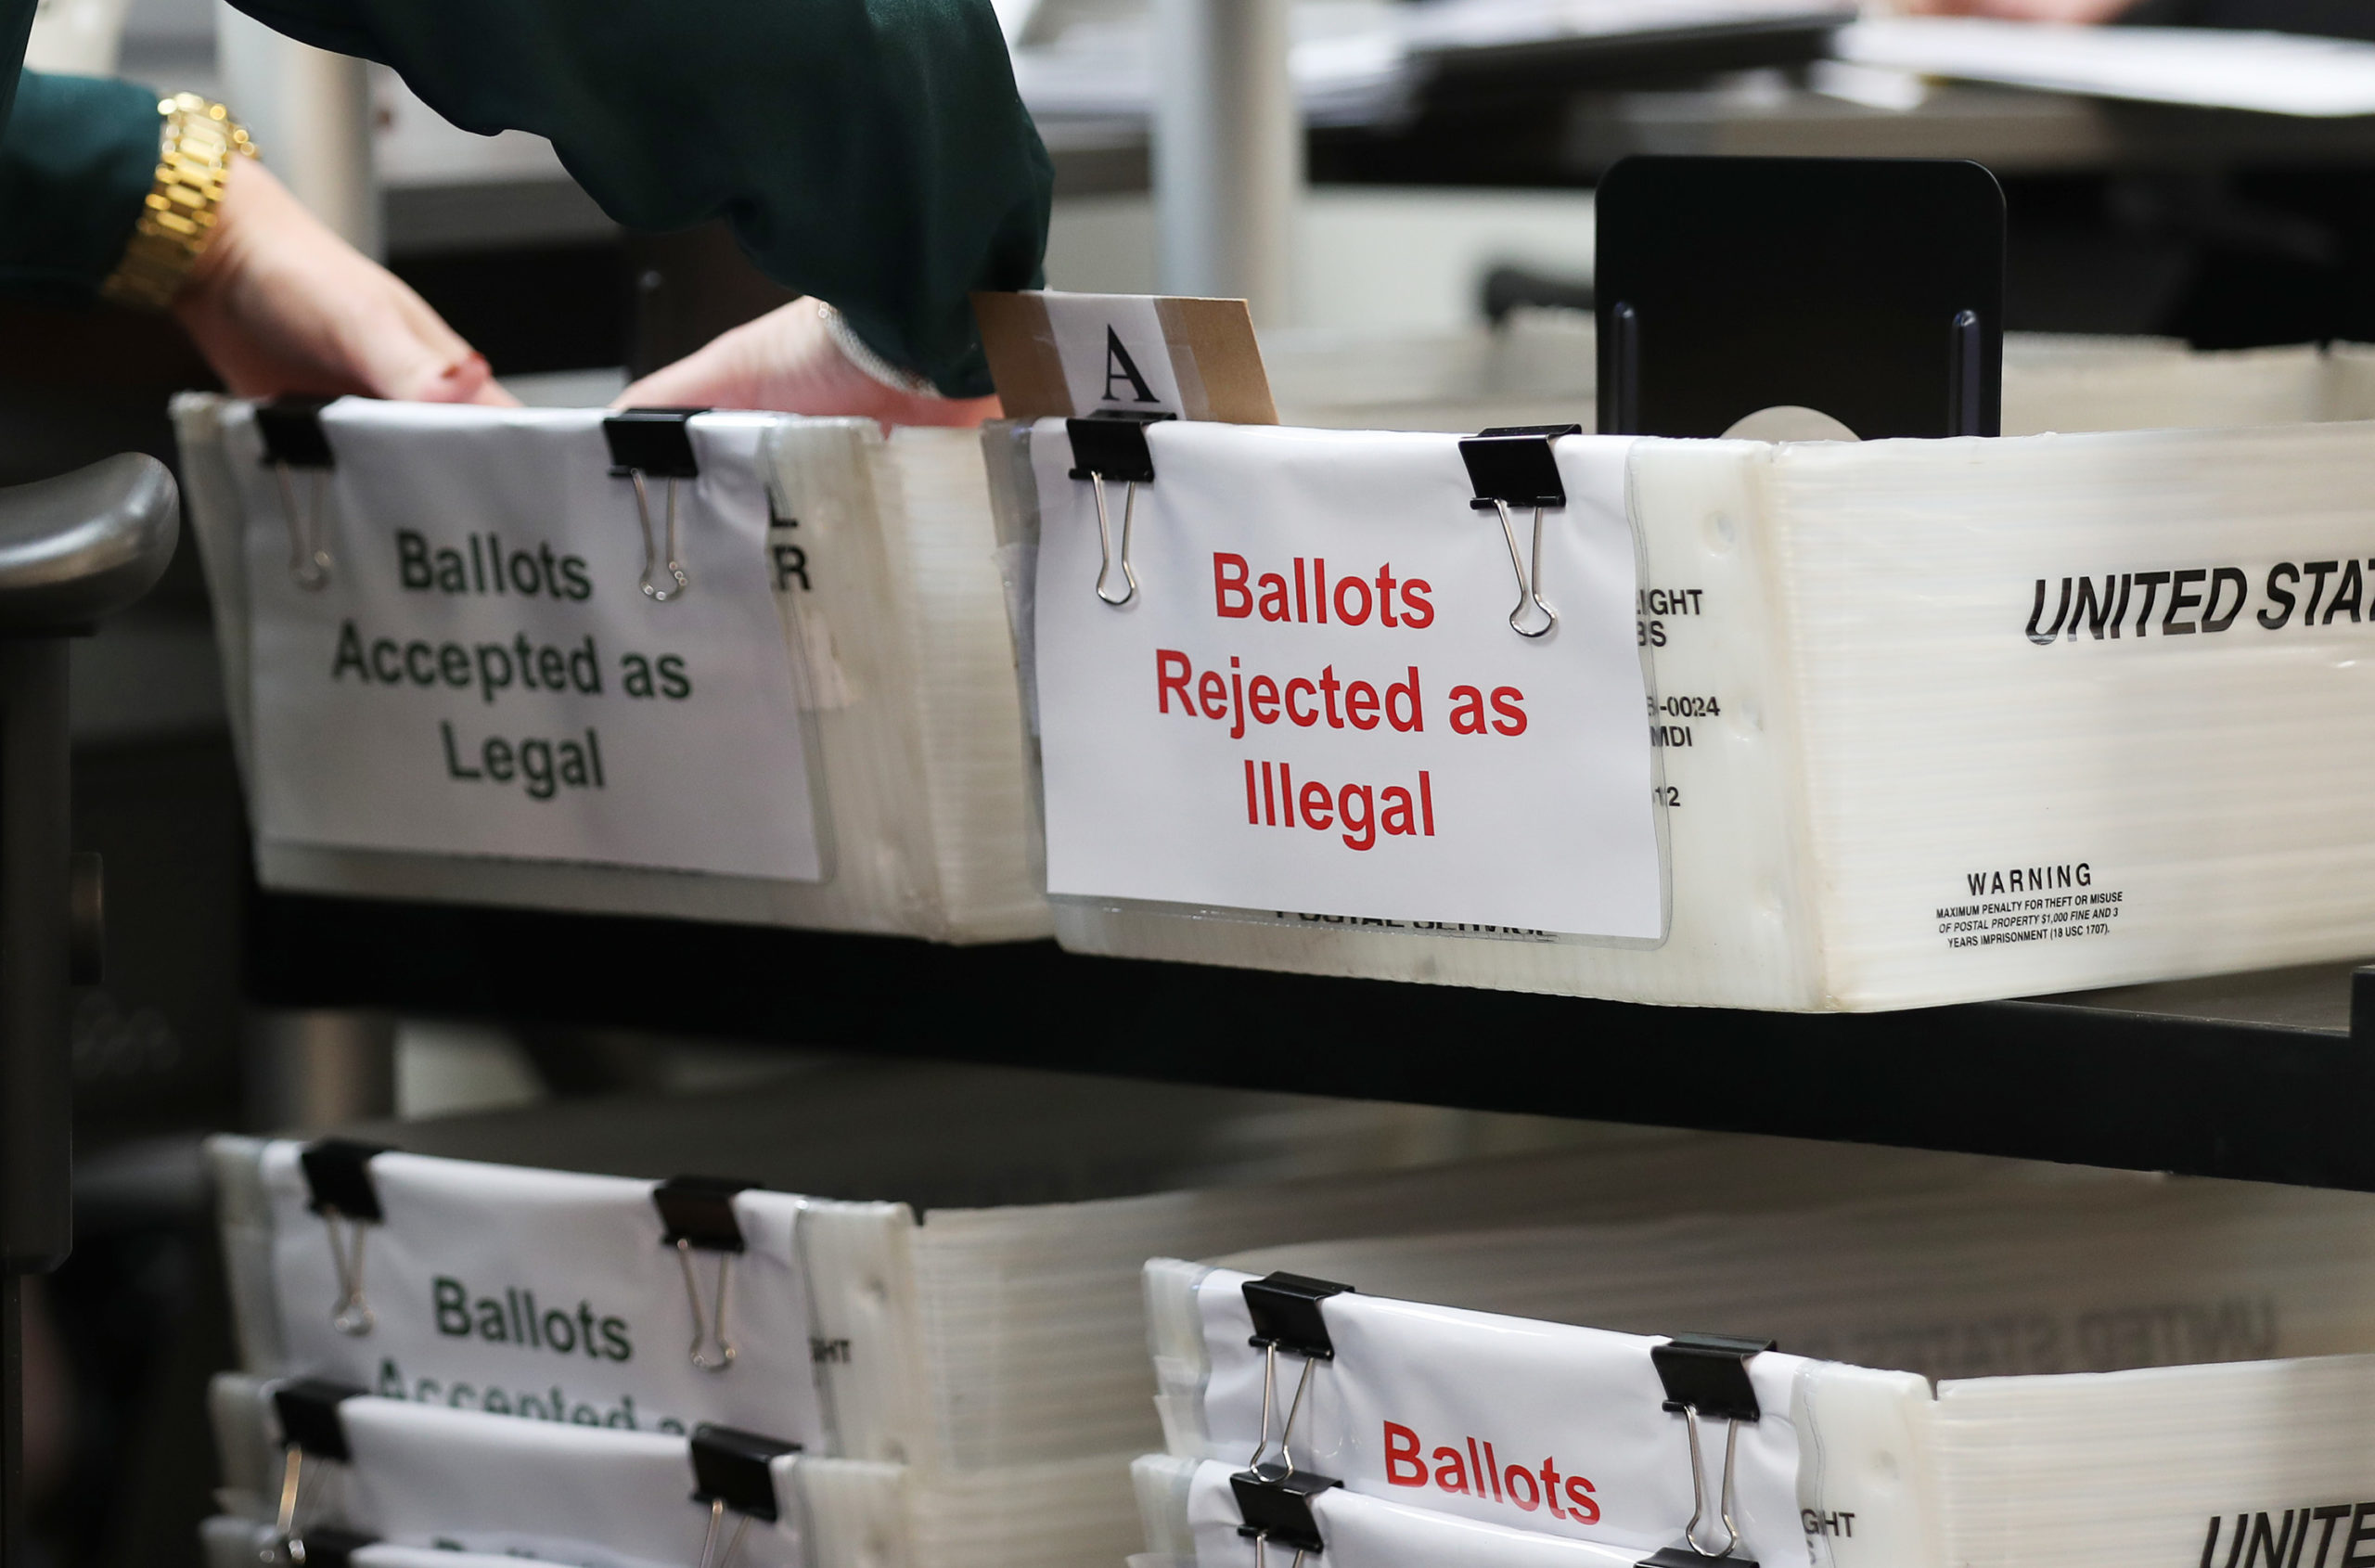 Boxes for Vote-by-Mail ballots that have been rejected or accepted due to signature discrepancies are seen on Oct. 15 in Doral, Florida. (Joe Raedle/Getty Images)